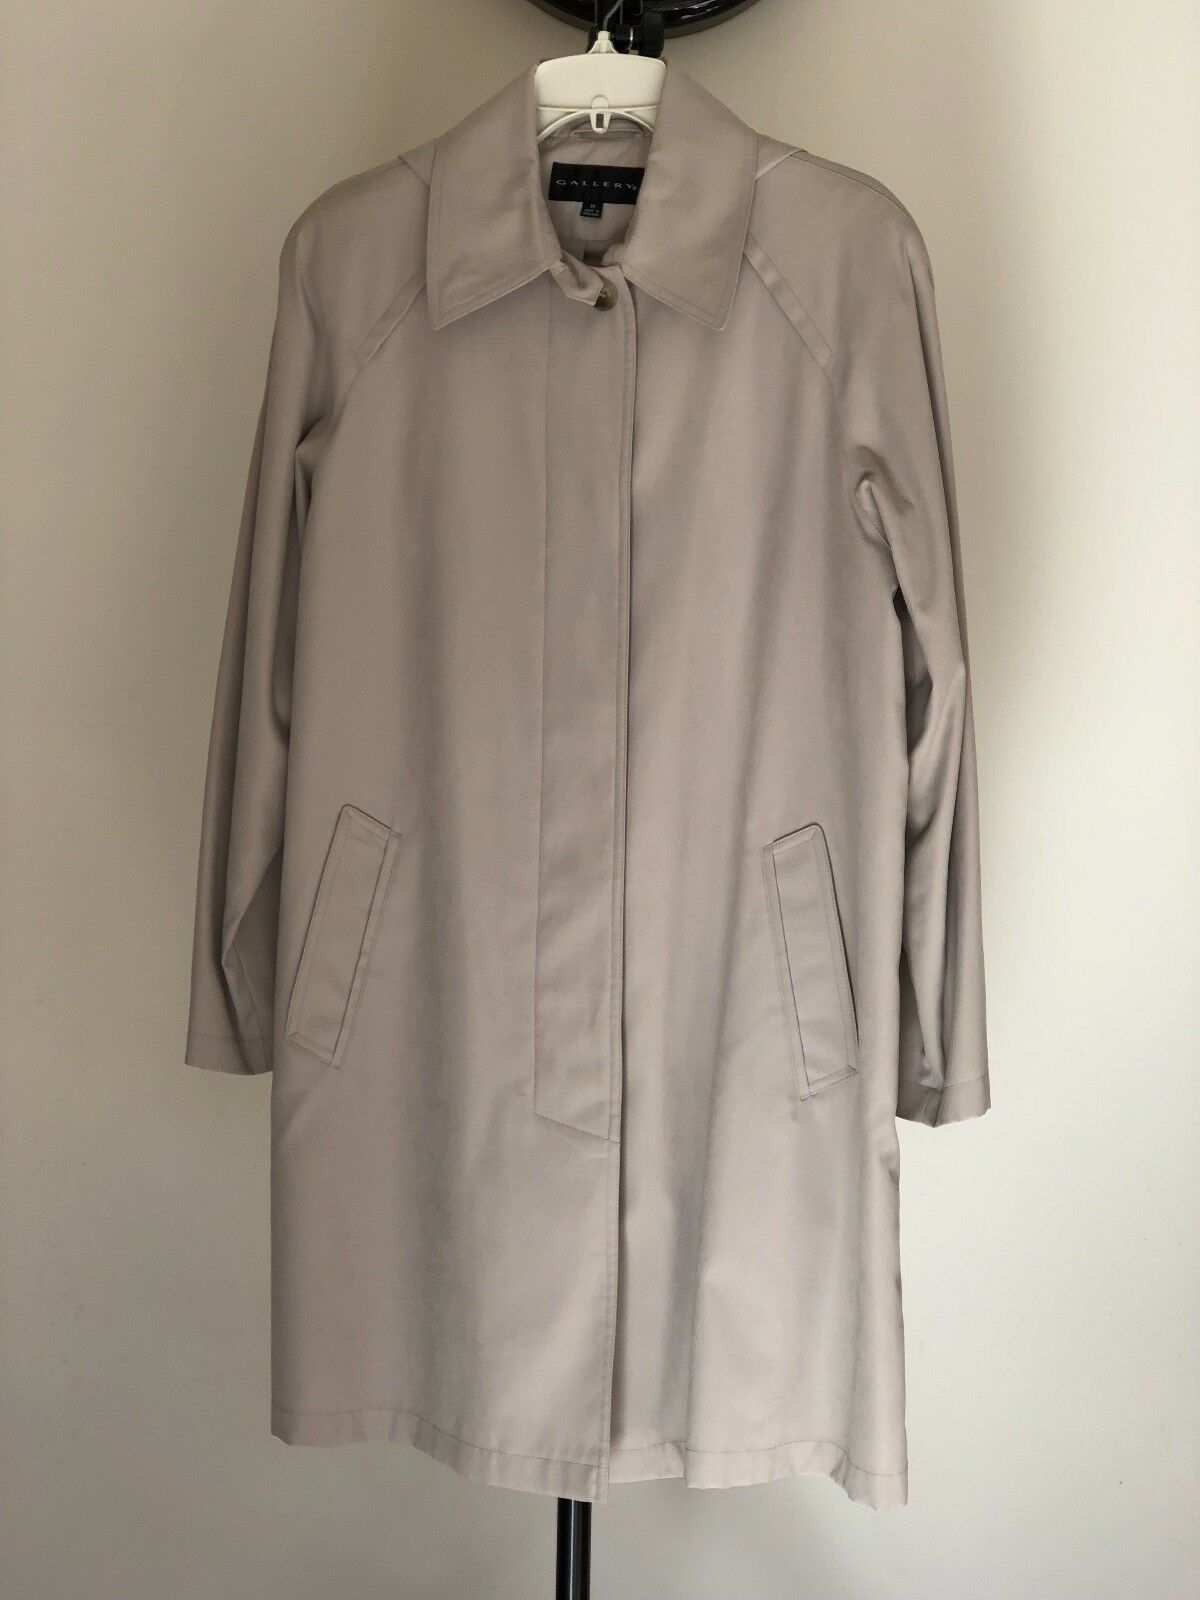 Women's Gallery Trench Coat Coat Coat Hooded Lined, Size M 9a08e1